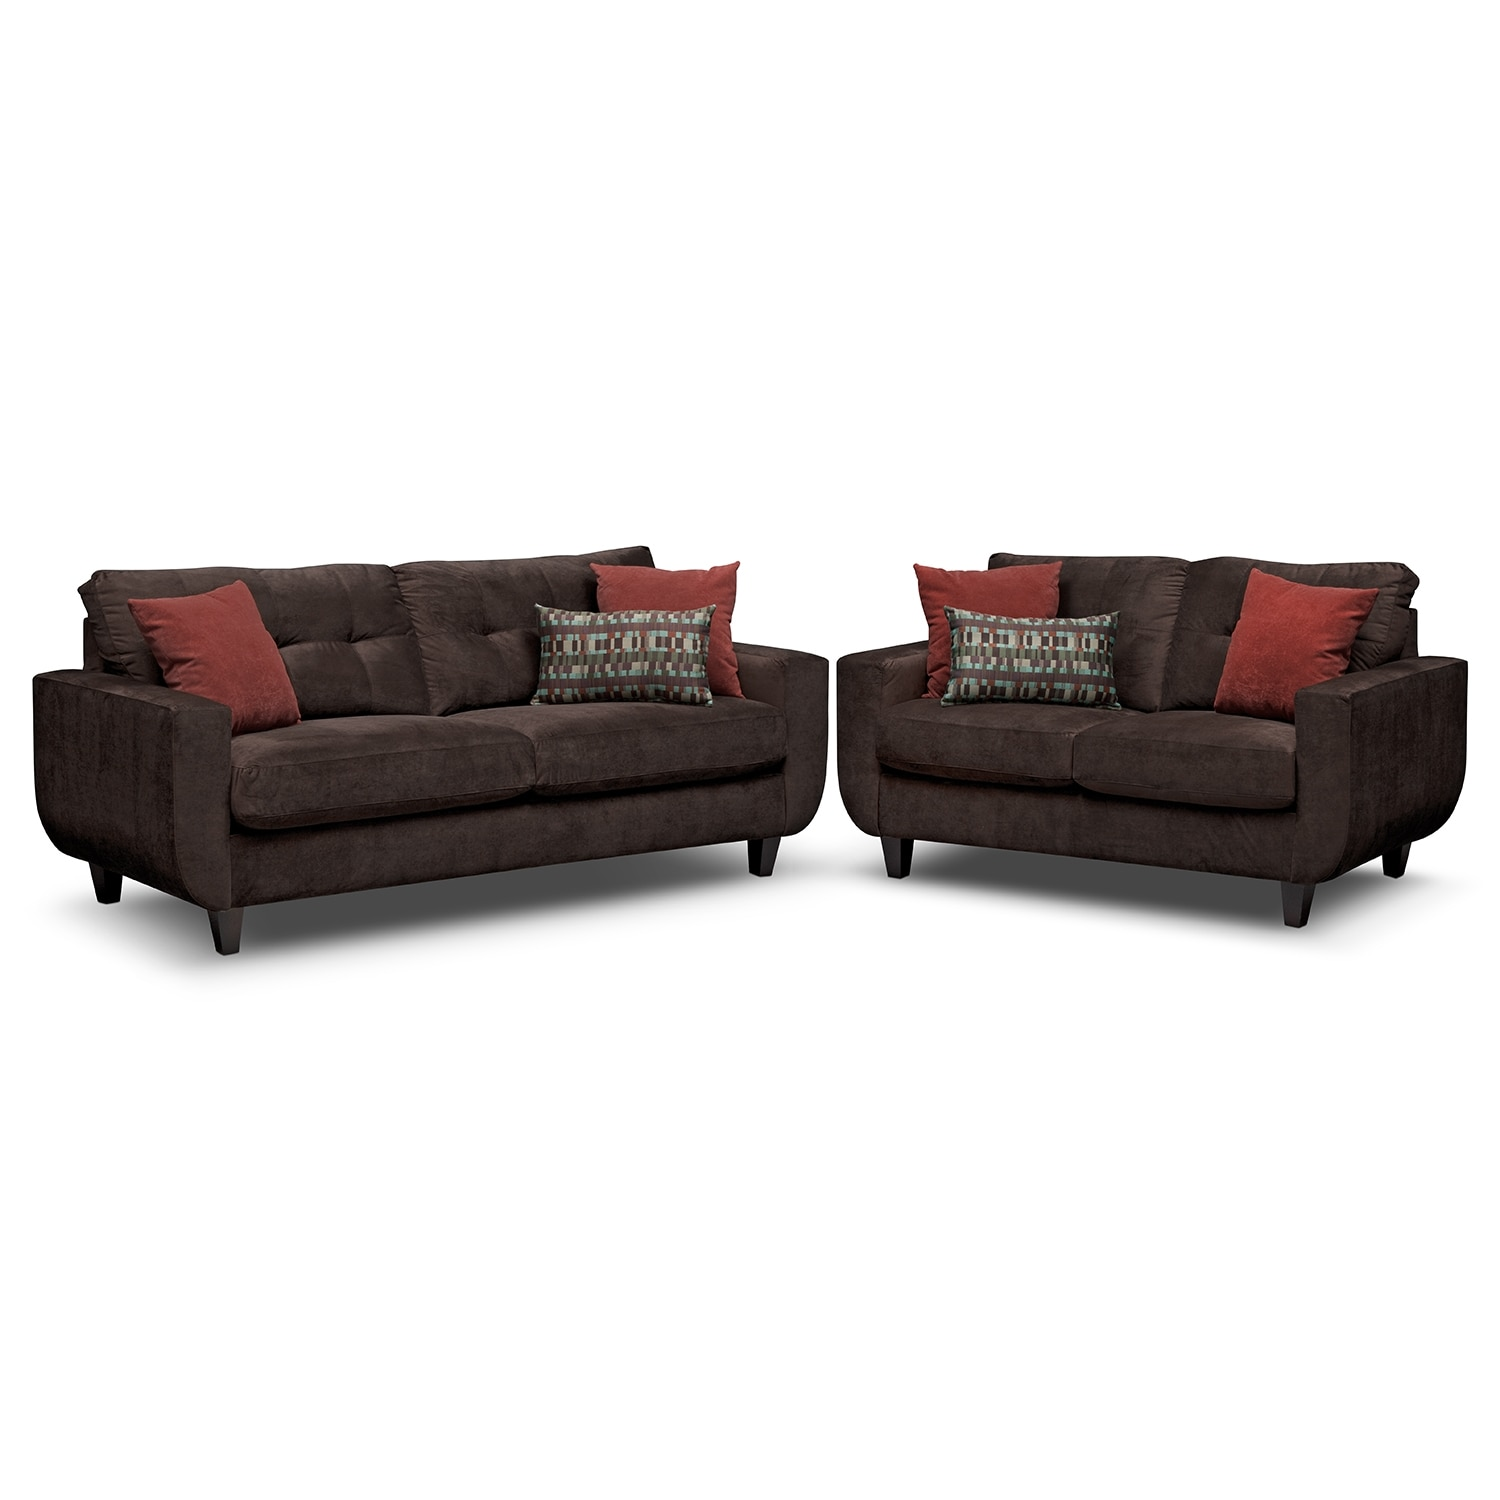 Living Room Furniture - West Village Sofa and Loveseat Set - Chocolate